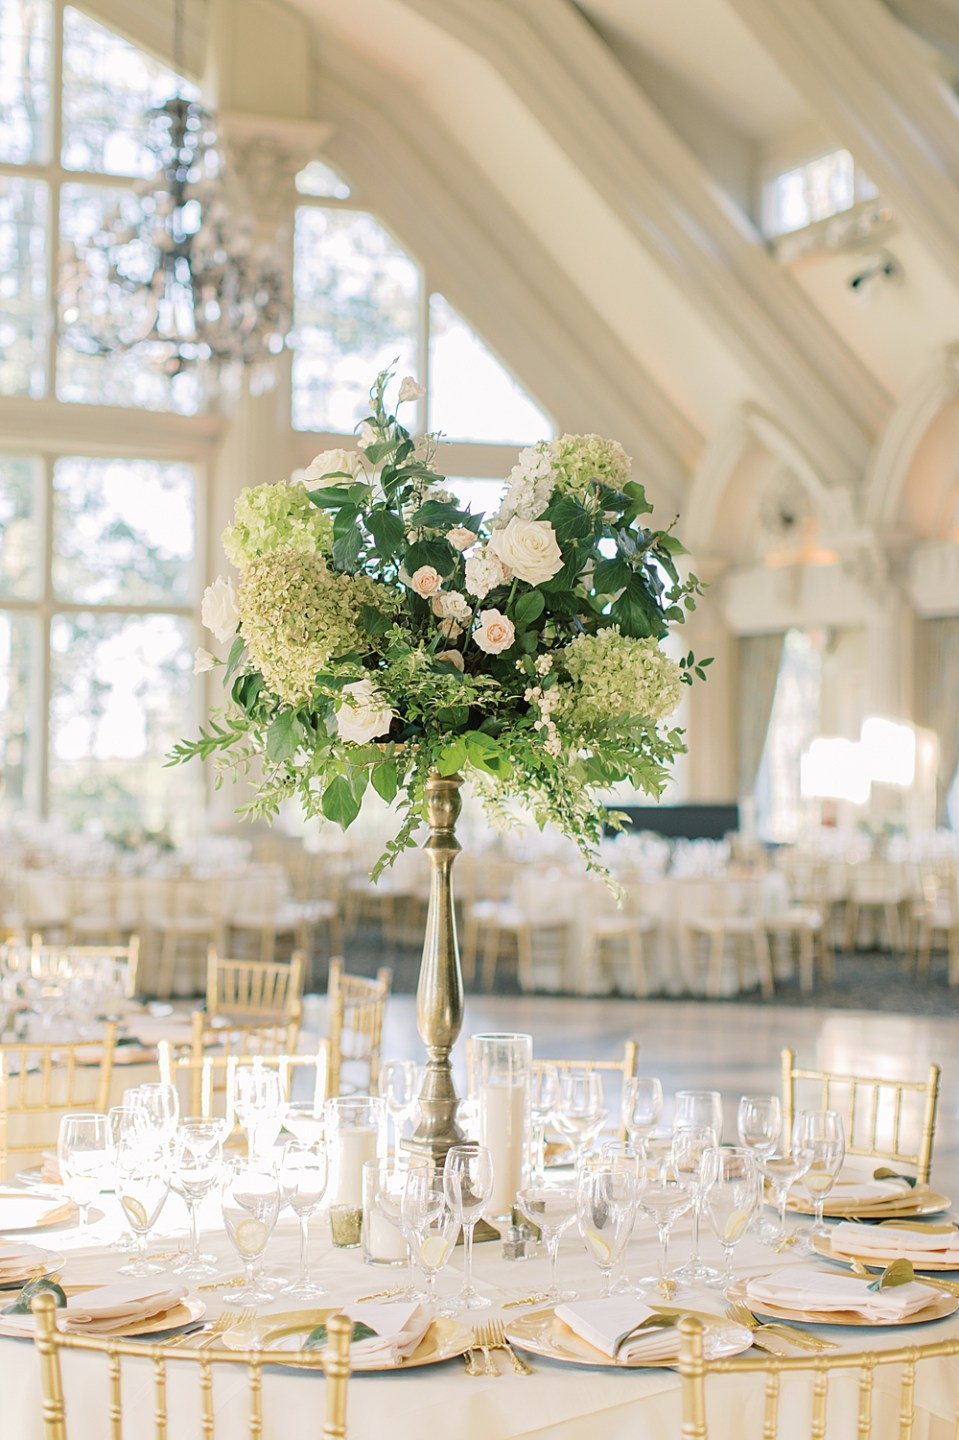 whisper and brook flower co | ashford estate wedding photography | sarah canning photography